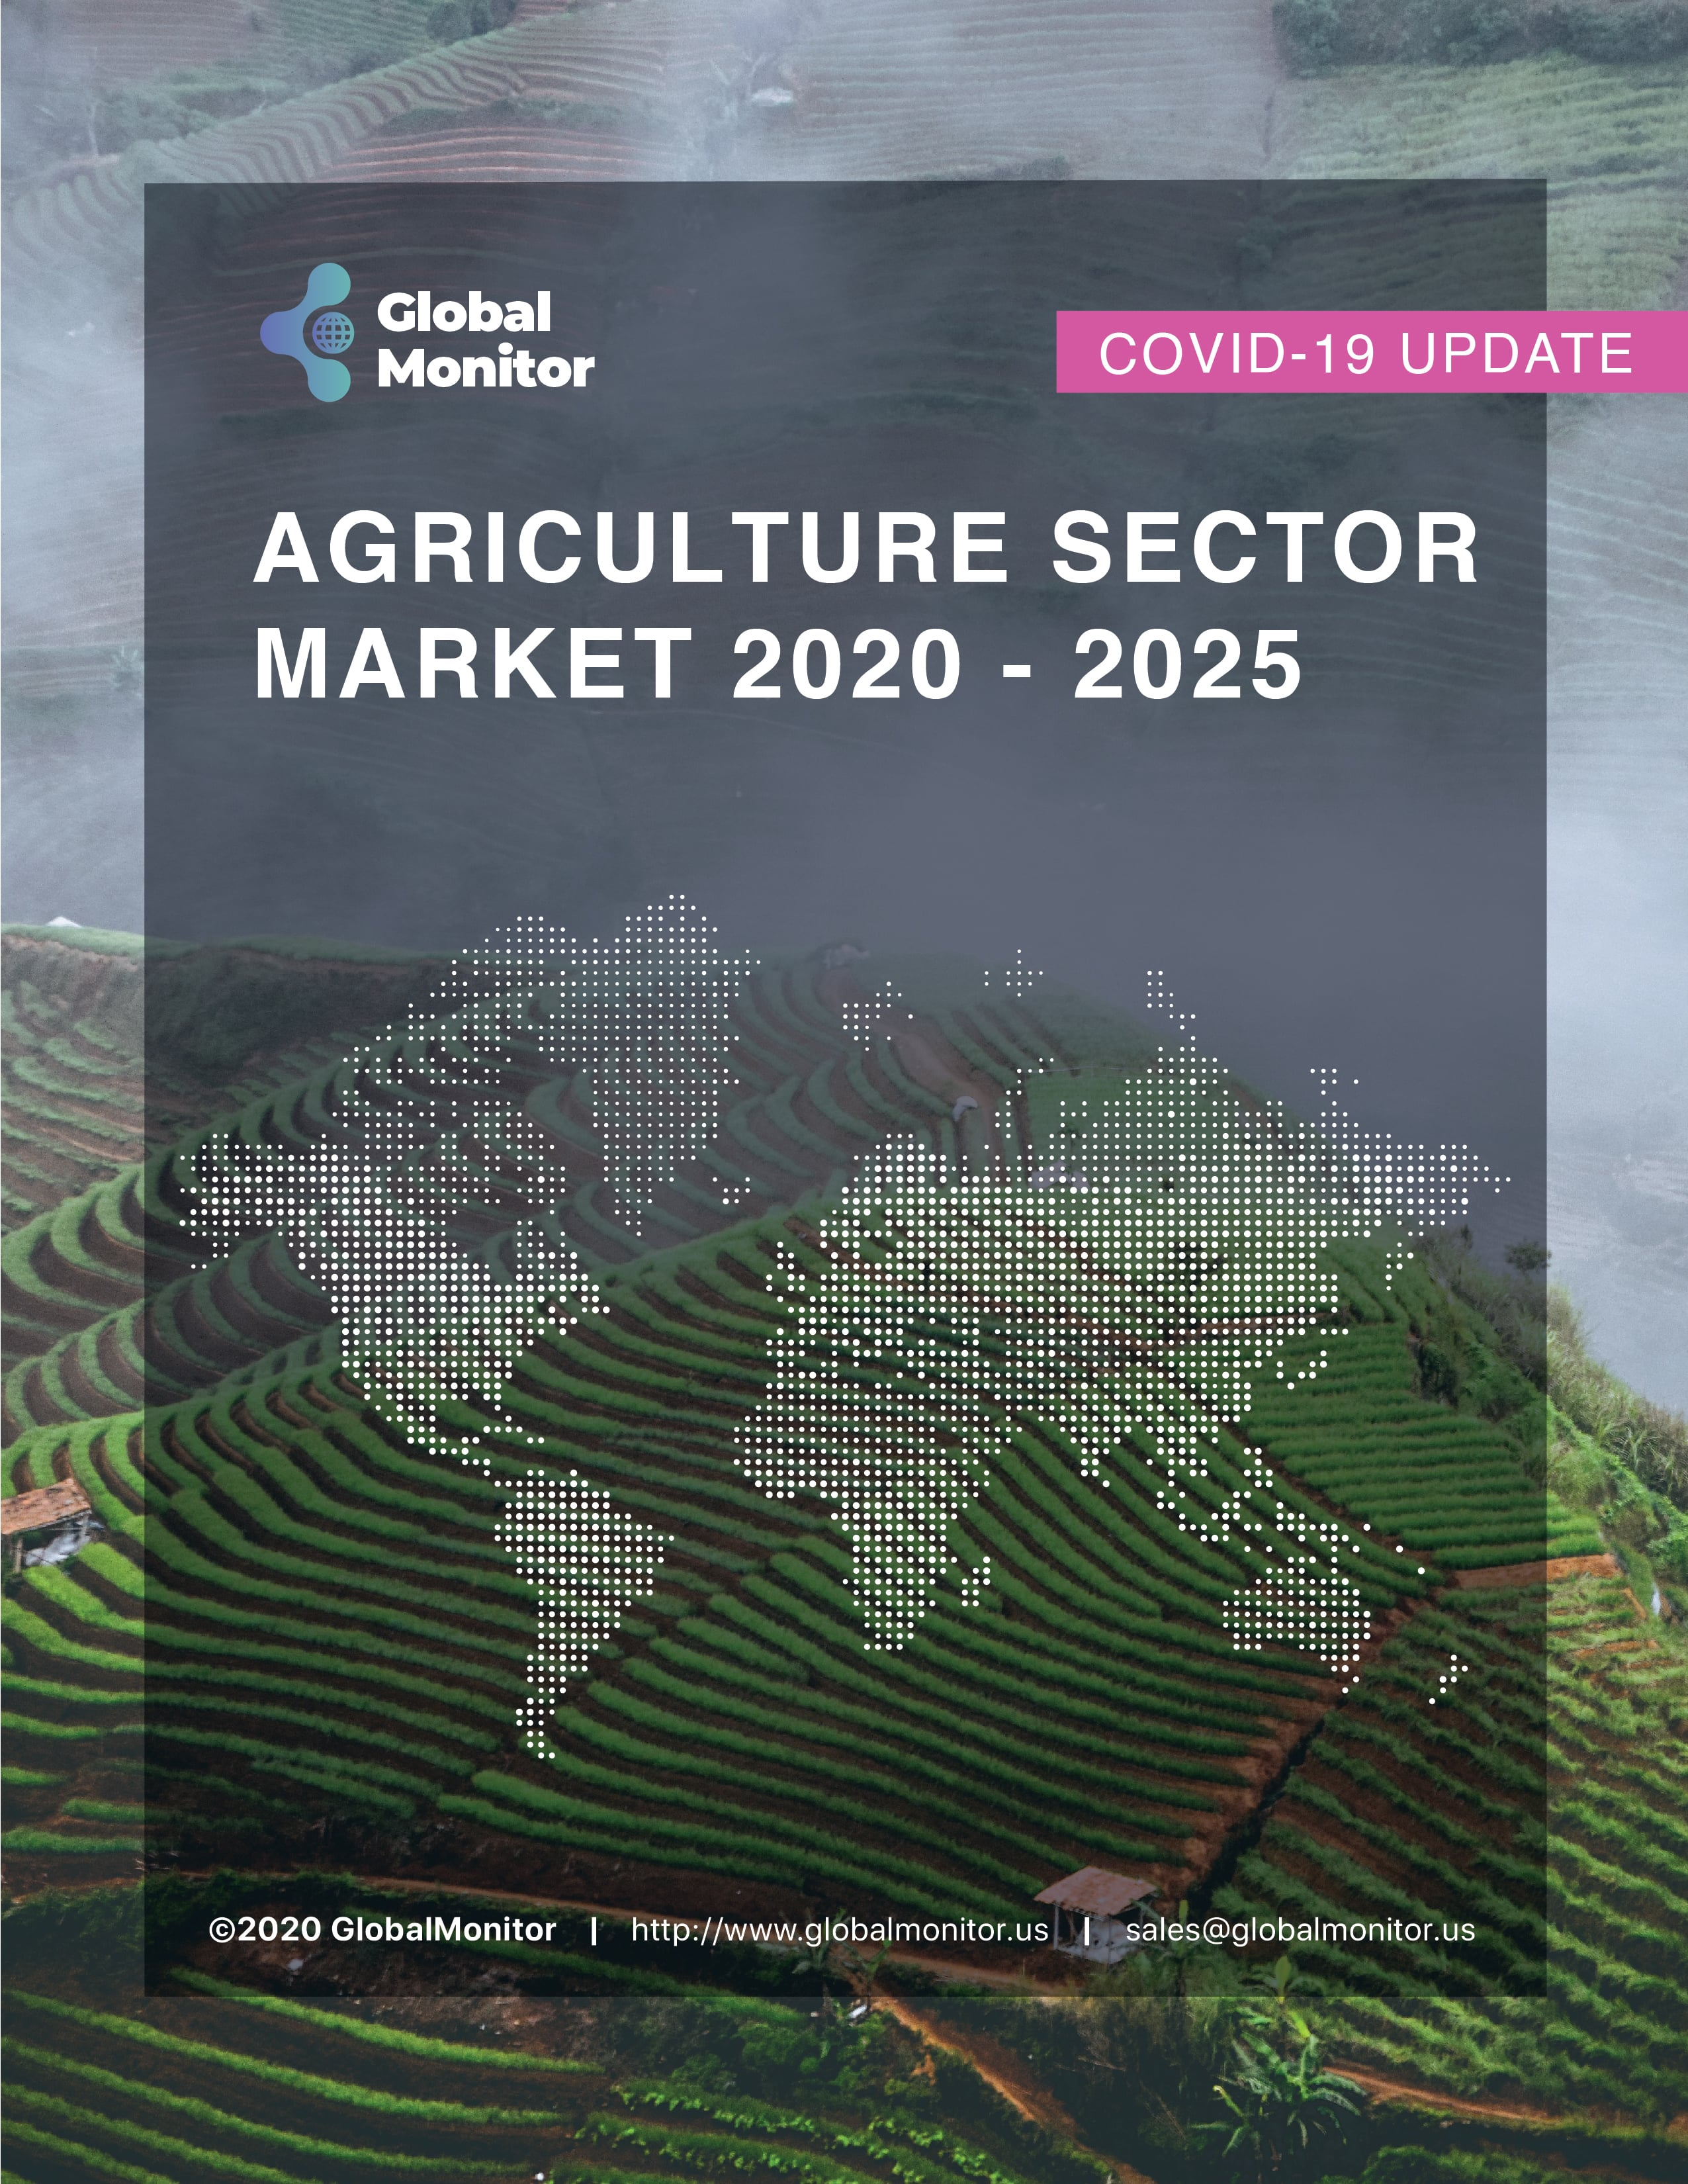 Brazil Agriculture Market Trends, Statistics, Growth, and Forecasts